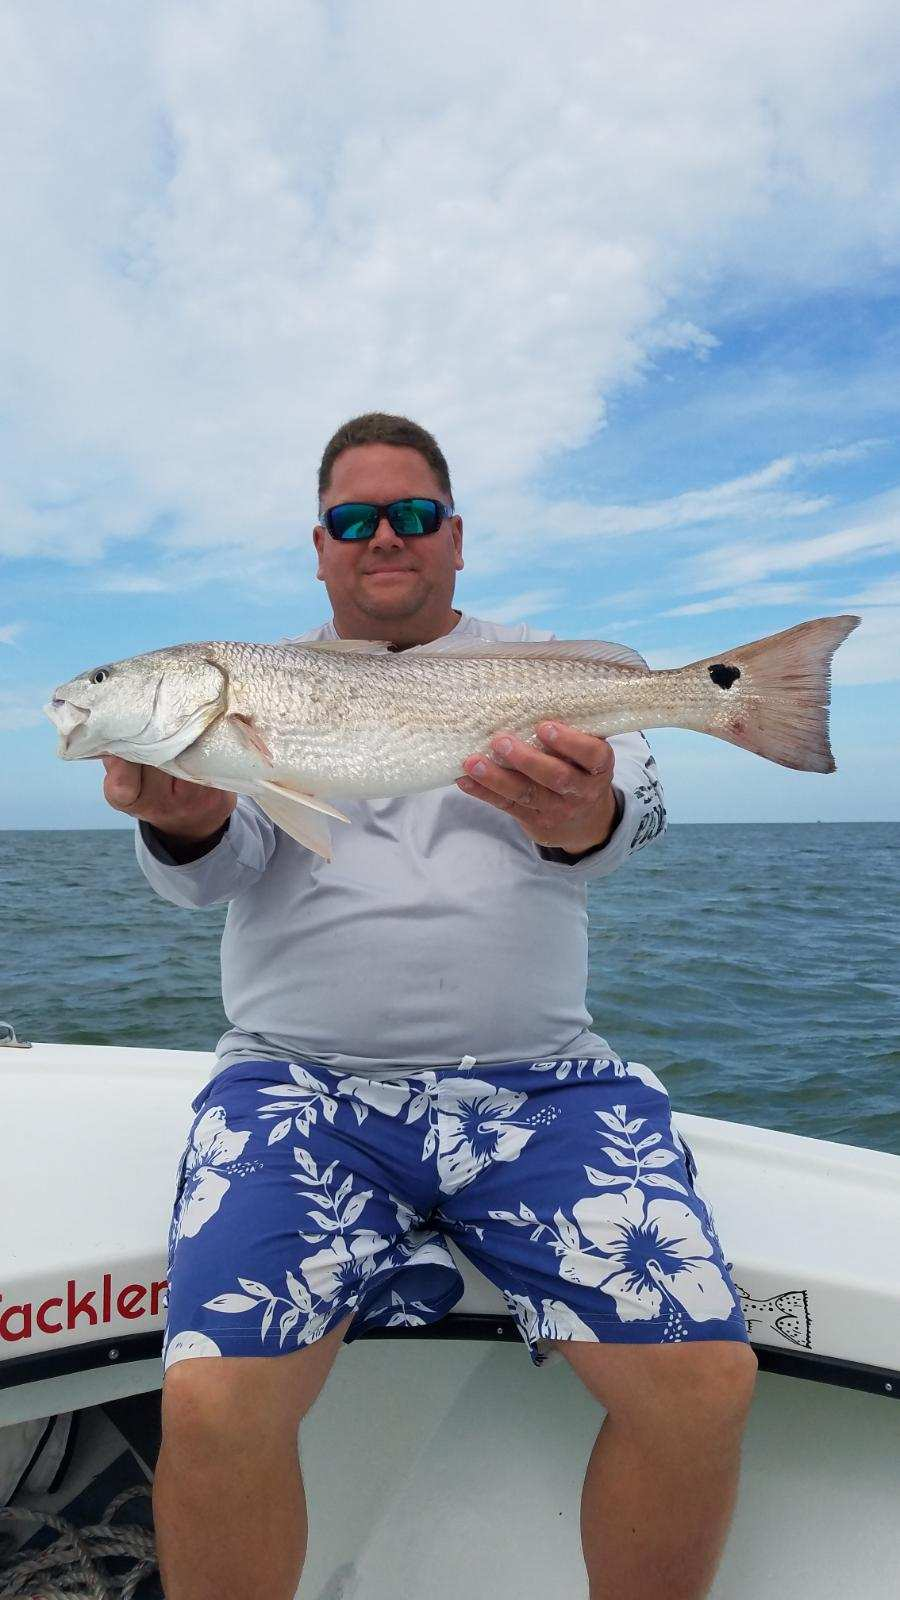 Speck-Tackler Fishing Teach's Lair Inshore Charters